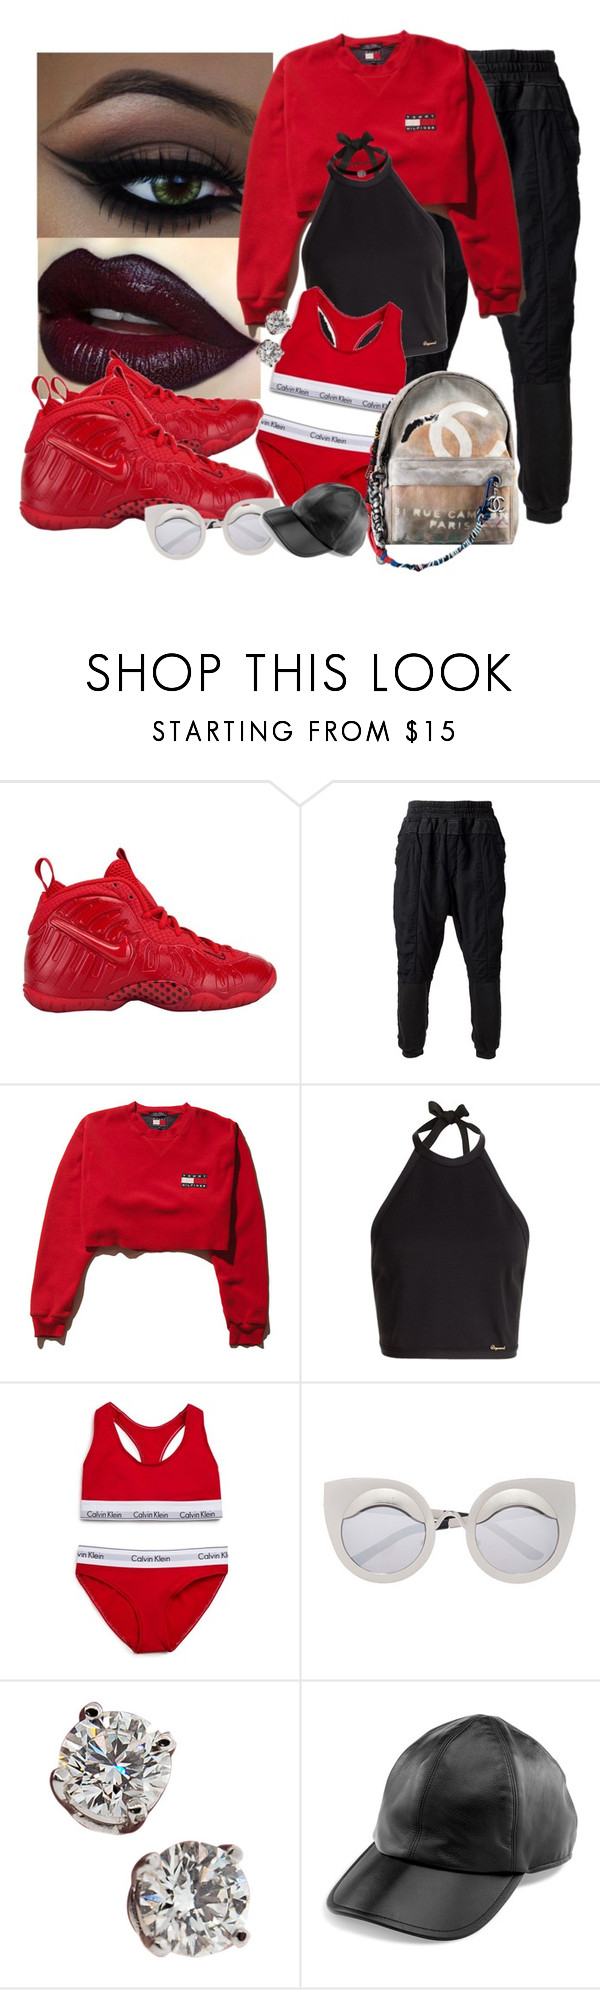 e9ccff1c416b by lady-williams ❤ liked on Polyvore featuring NIKE